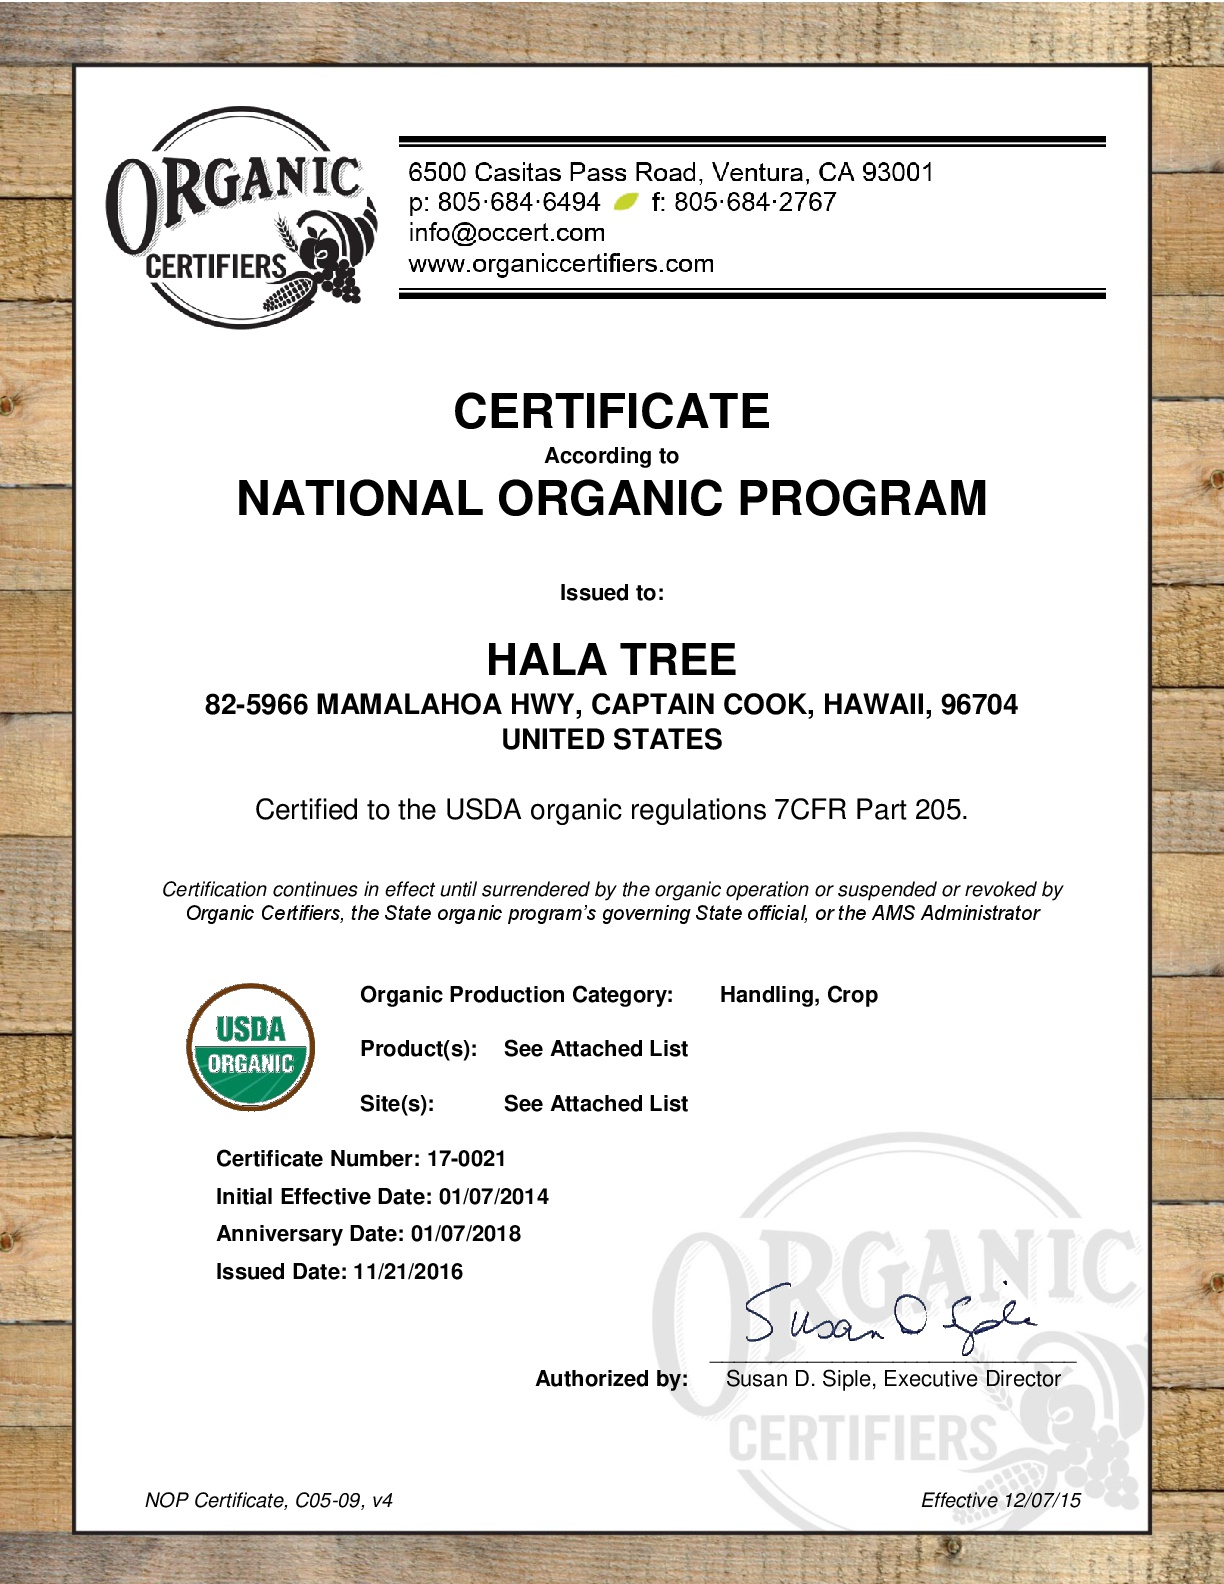 hala-tree-17-0021-certificate-of-organic-production-nop-001-1-.jpg